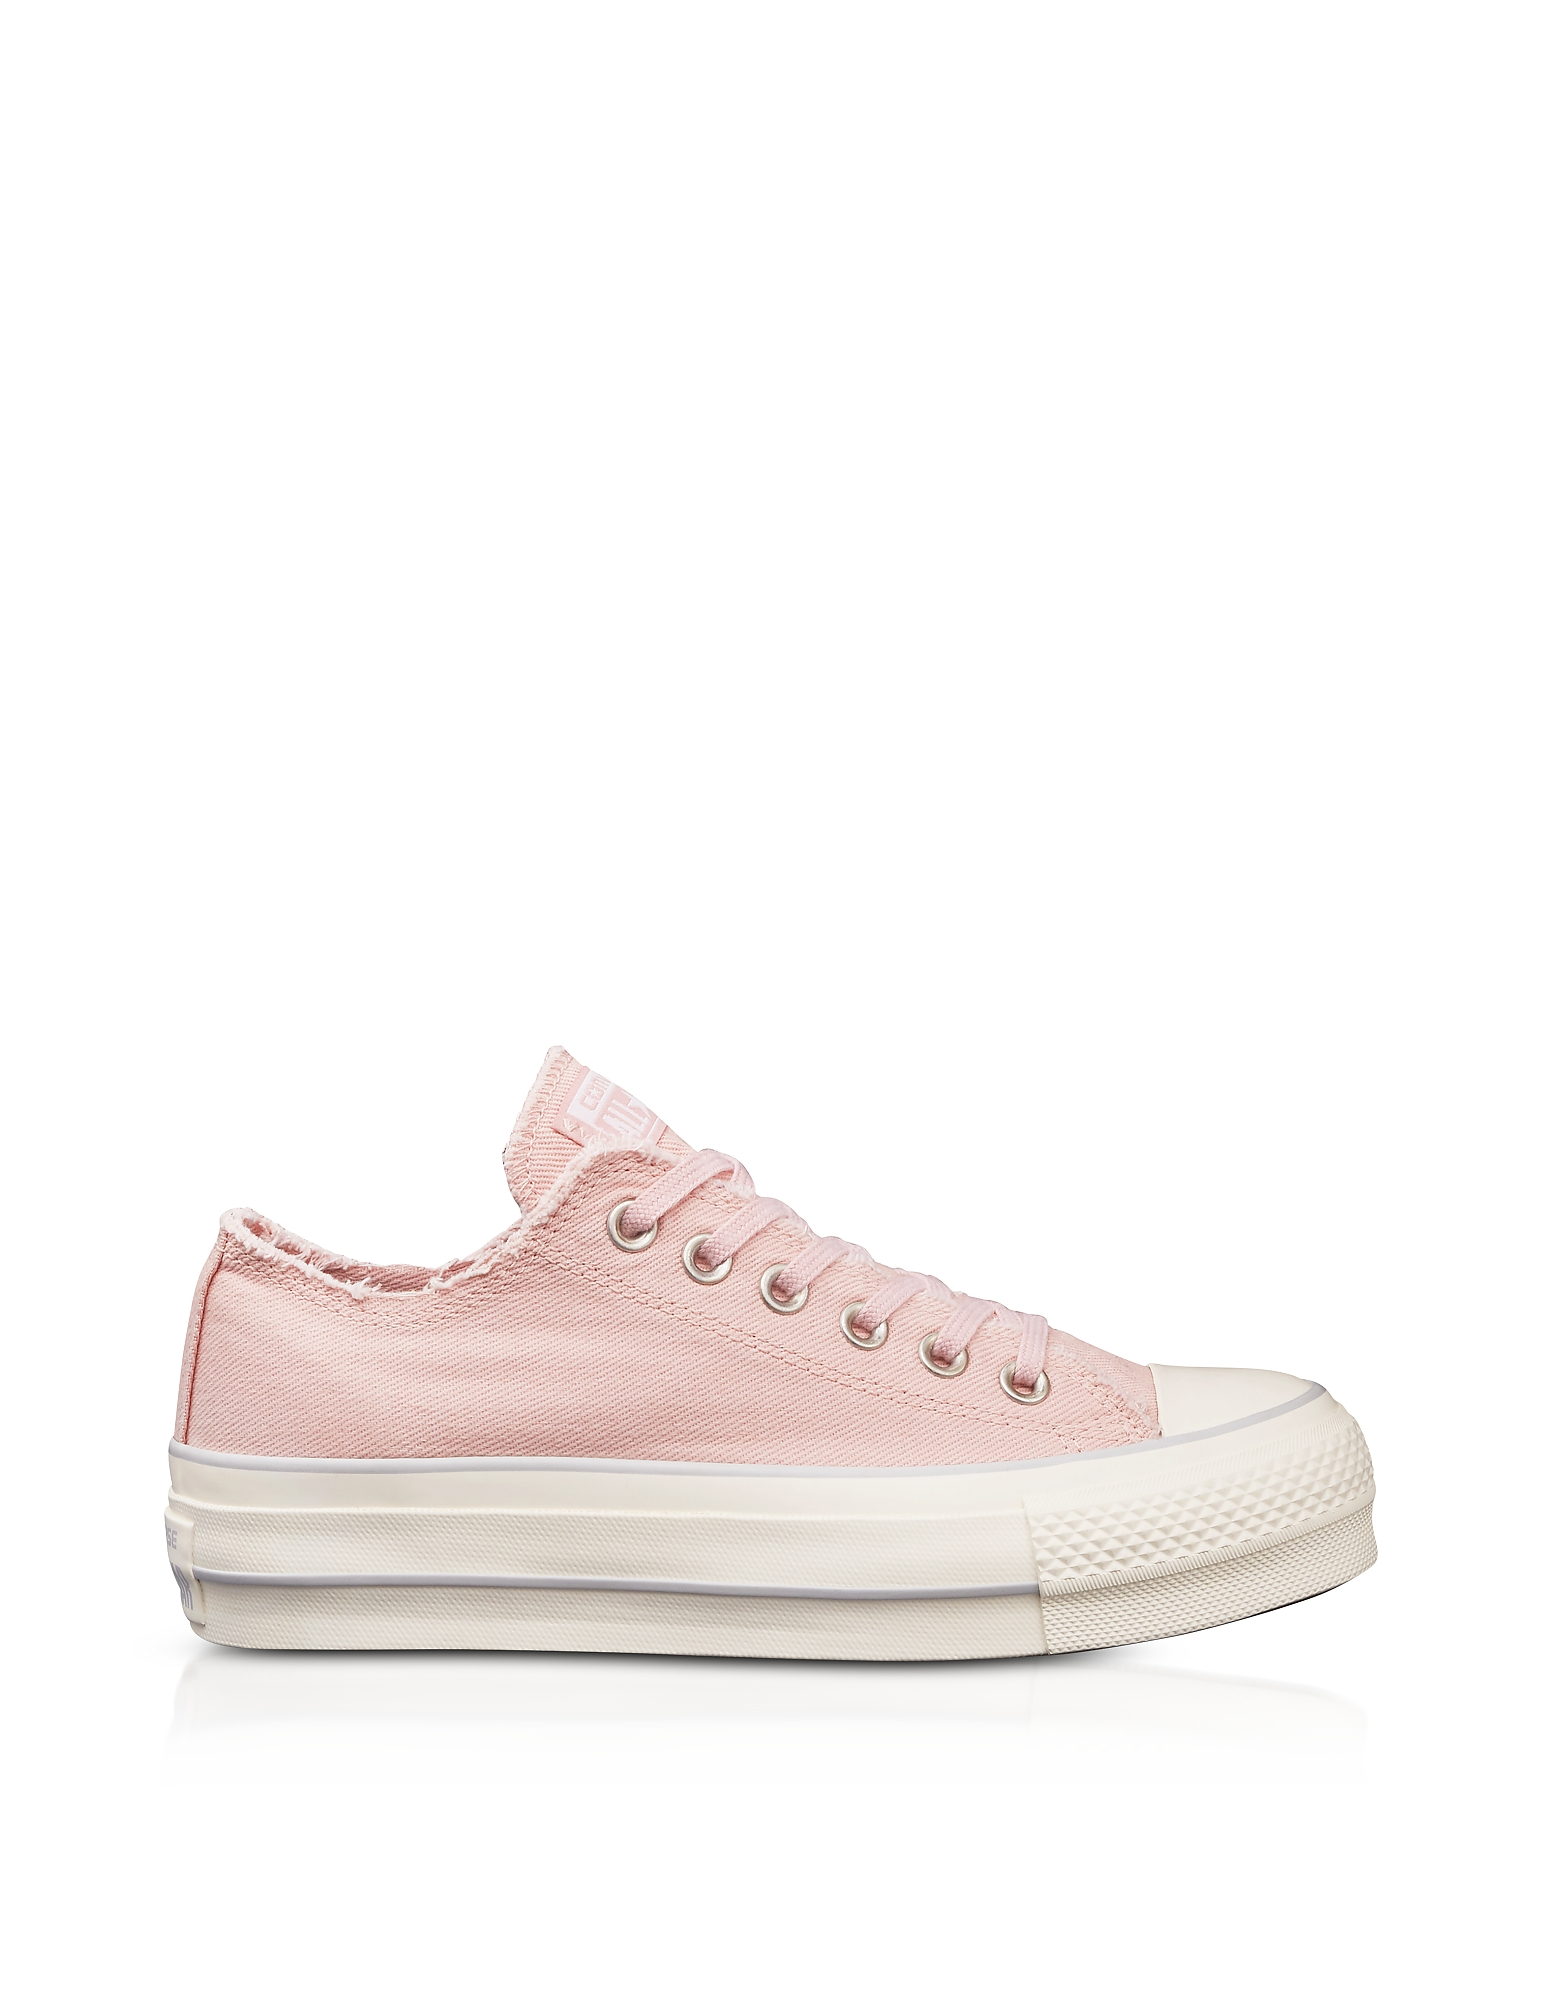 Converse Limited Edition Shoes, Chuck Taylor All Star High Blossom Pink Textured Canvas Flatform Sne